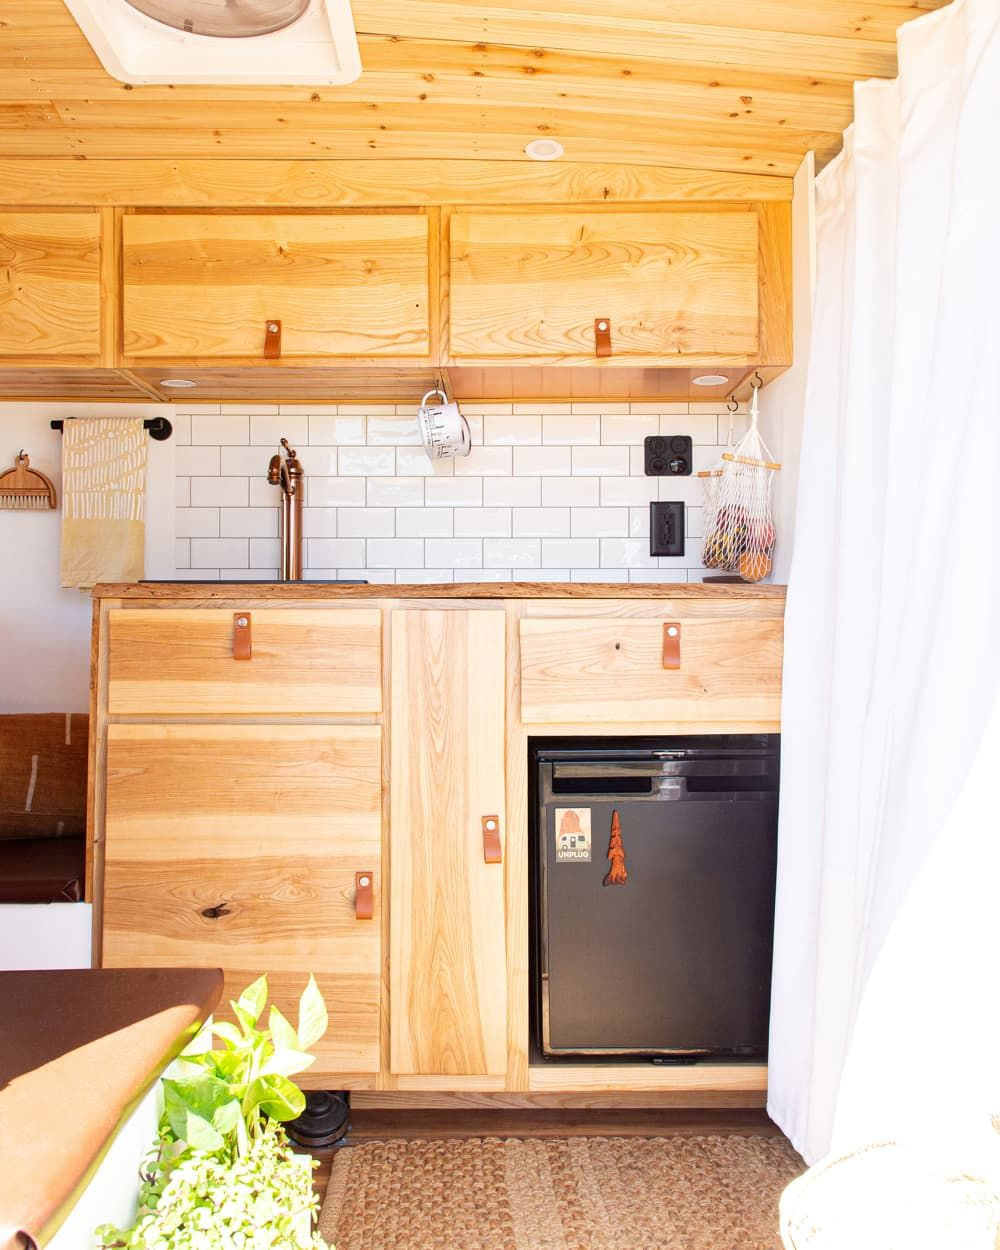 A 55 Square Feet Converted Van Is So Gorgeous It S Like A Minimal Modern Woodsy Cabin On Wheels In 2020 Converted Vans Van Home Kitchen Dining Room